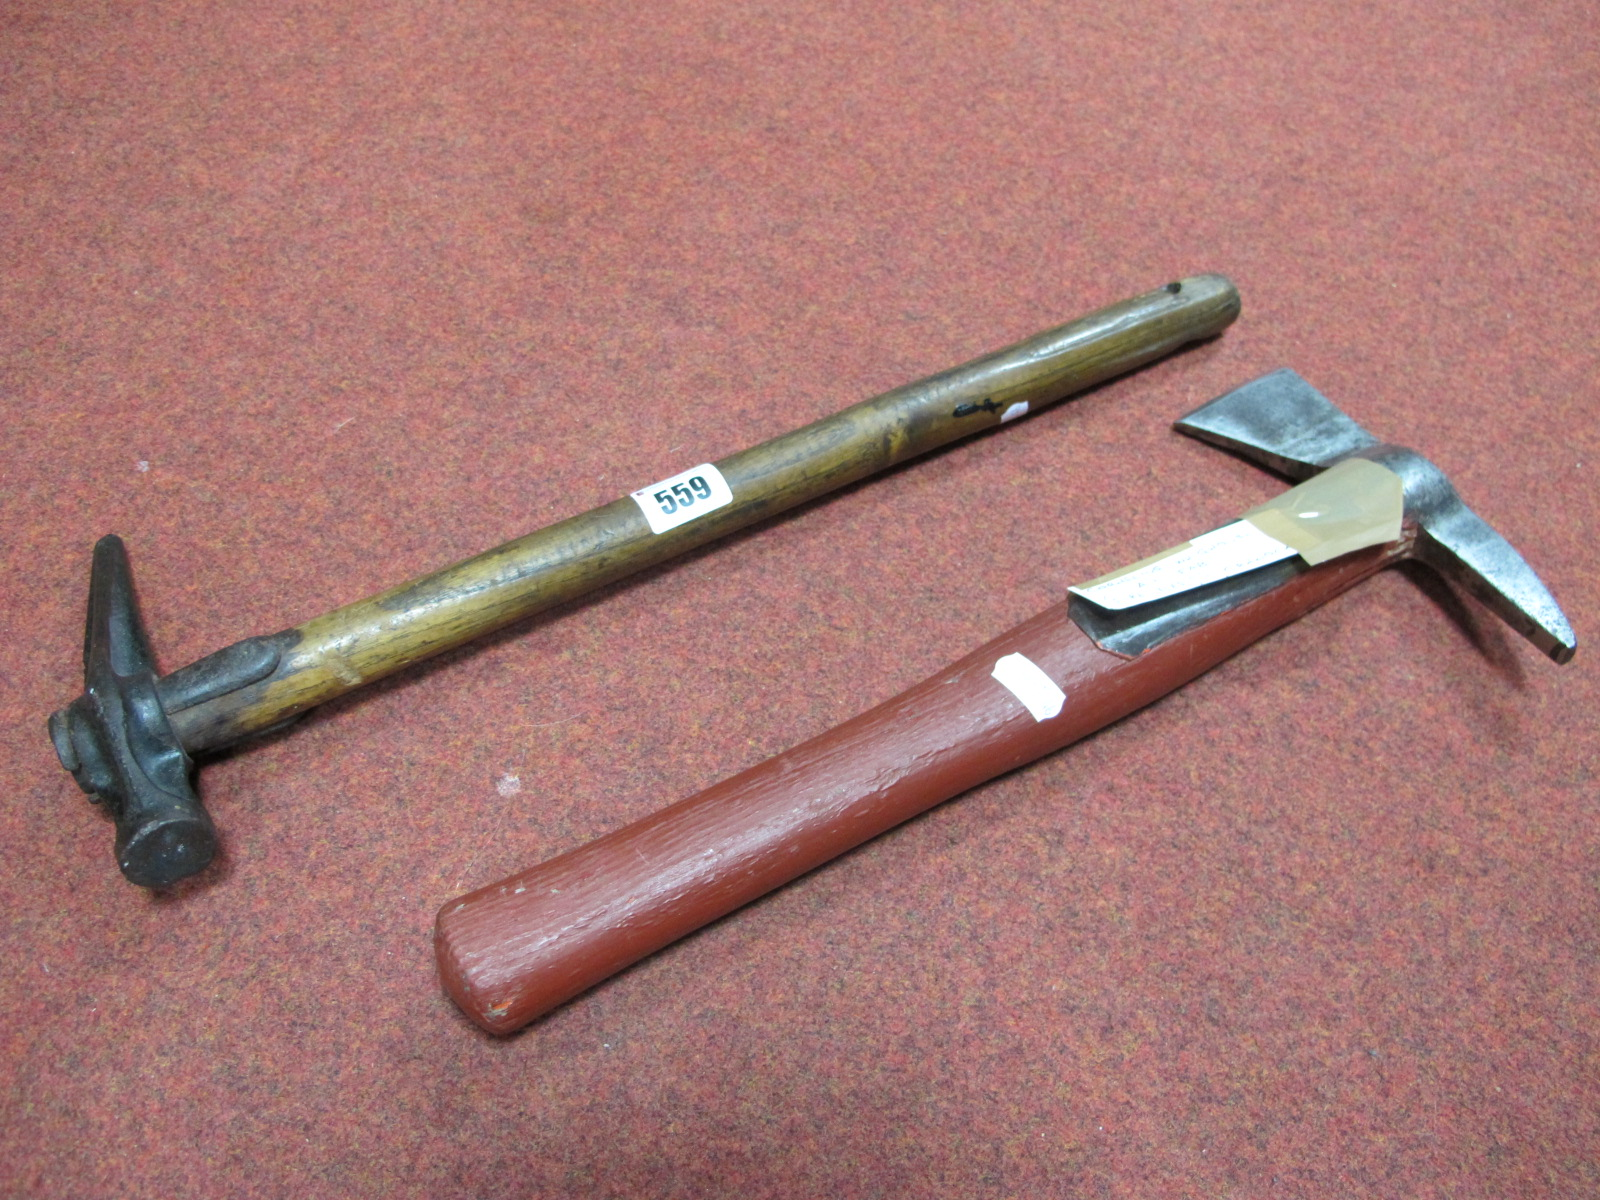 Fire Axe by Whitehouse of Cannock, 39cm long, No. 224 Pick. (2)